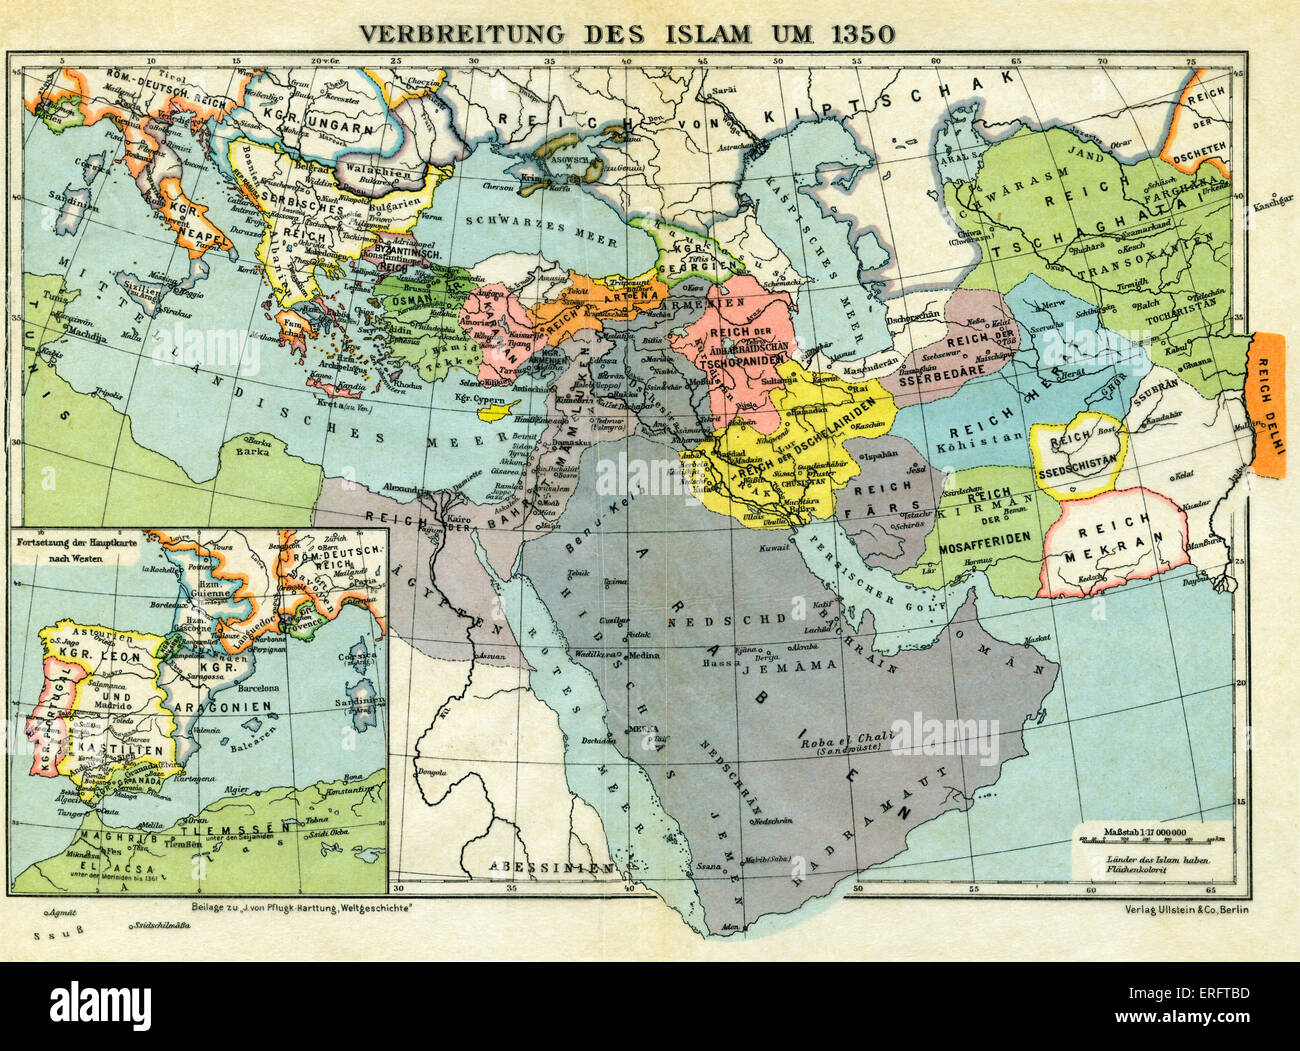 The spread of Islam, c. 1350 - map. The progress into Europe of Islam bringing its influence on religion and culture Stock Photo